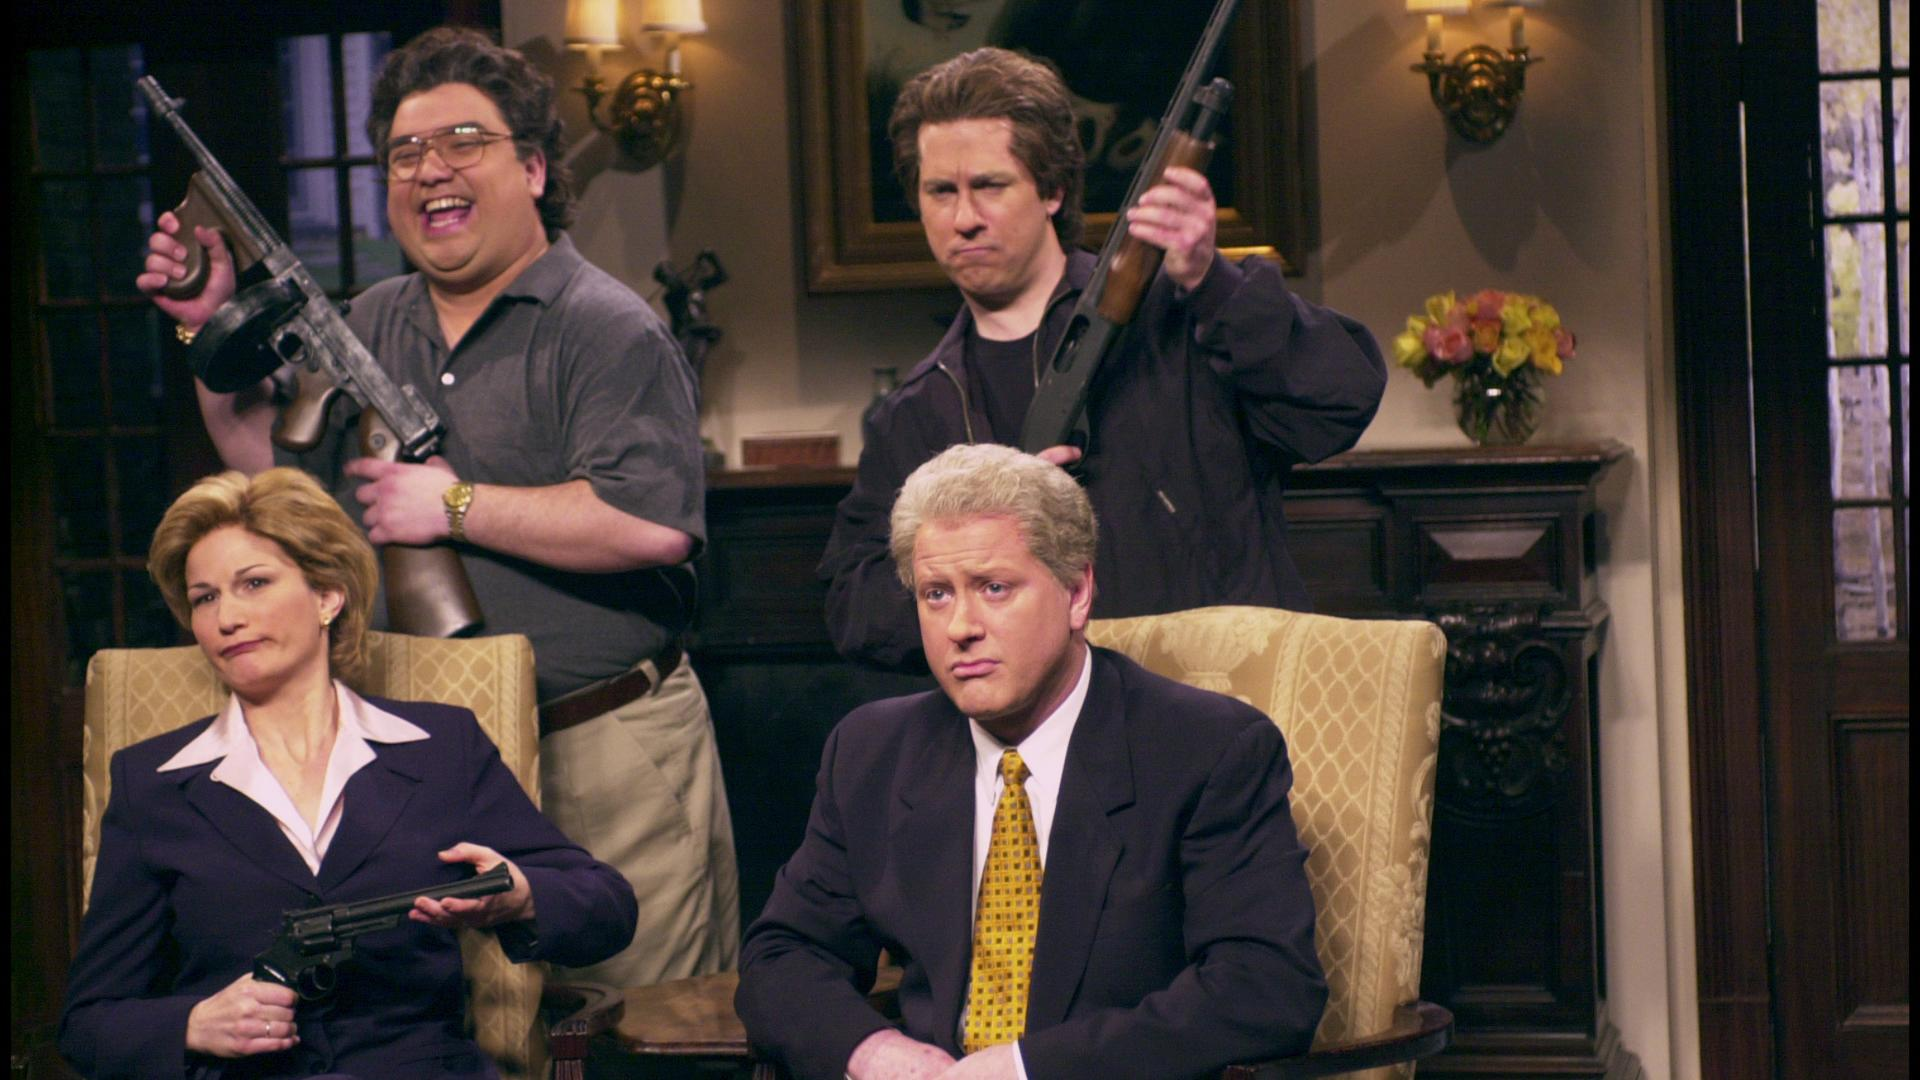 Cracked Up: La historia de Darrell Hammond